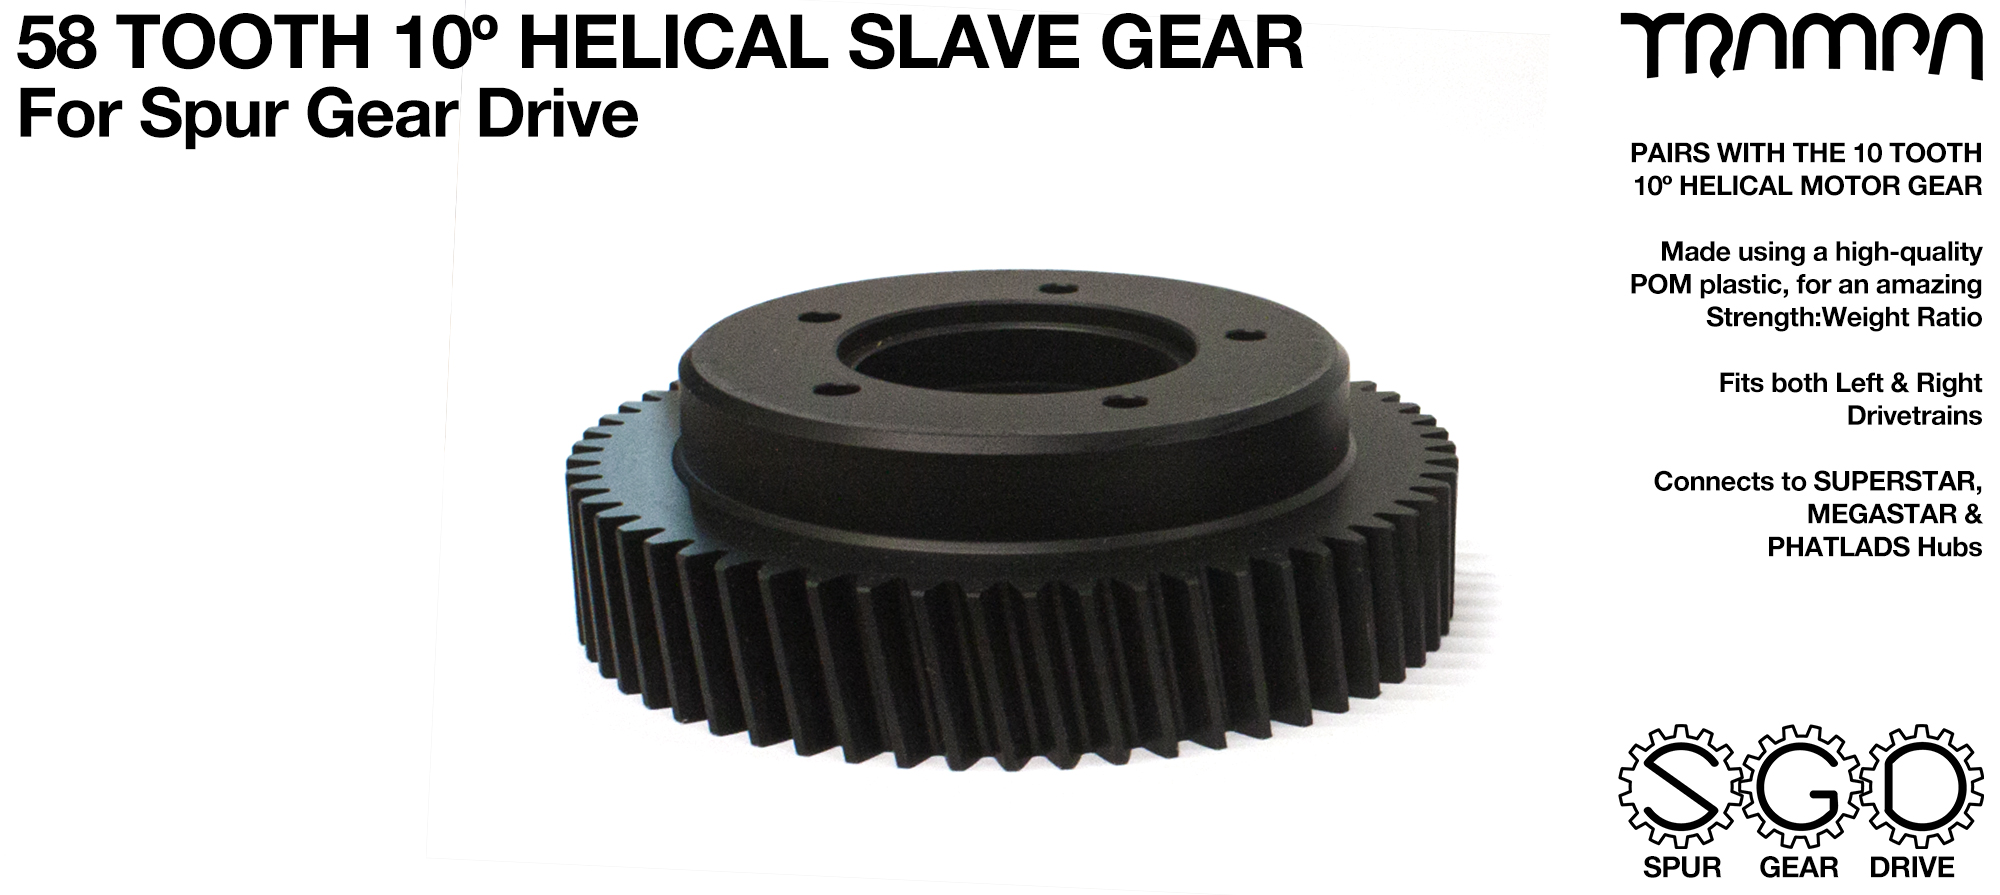 Spur Gear Drive 58 Tooth 10º HELICAL Cut Slave Pulley - POM